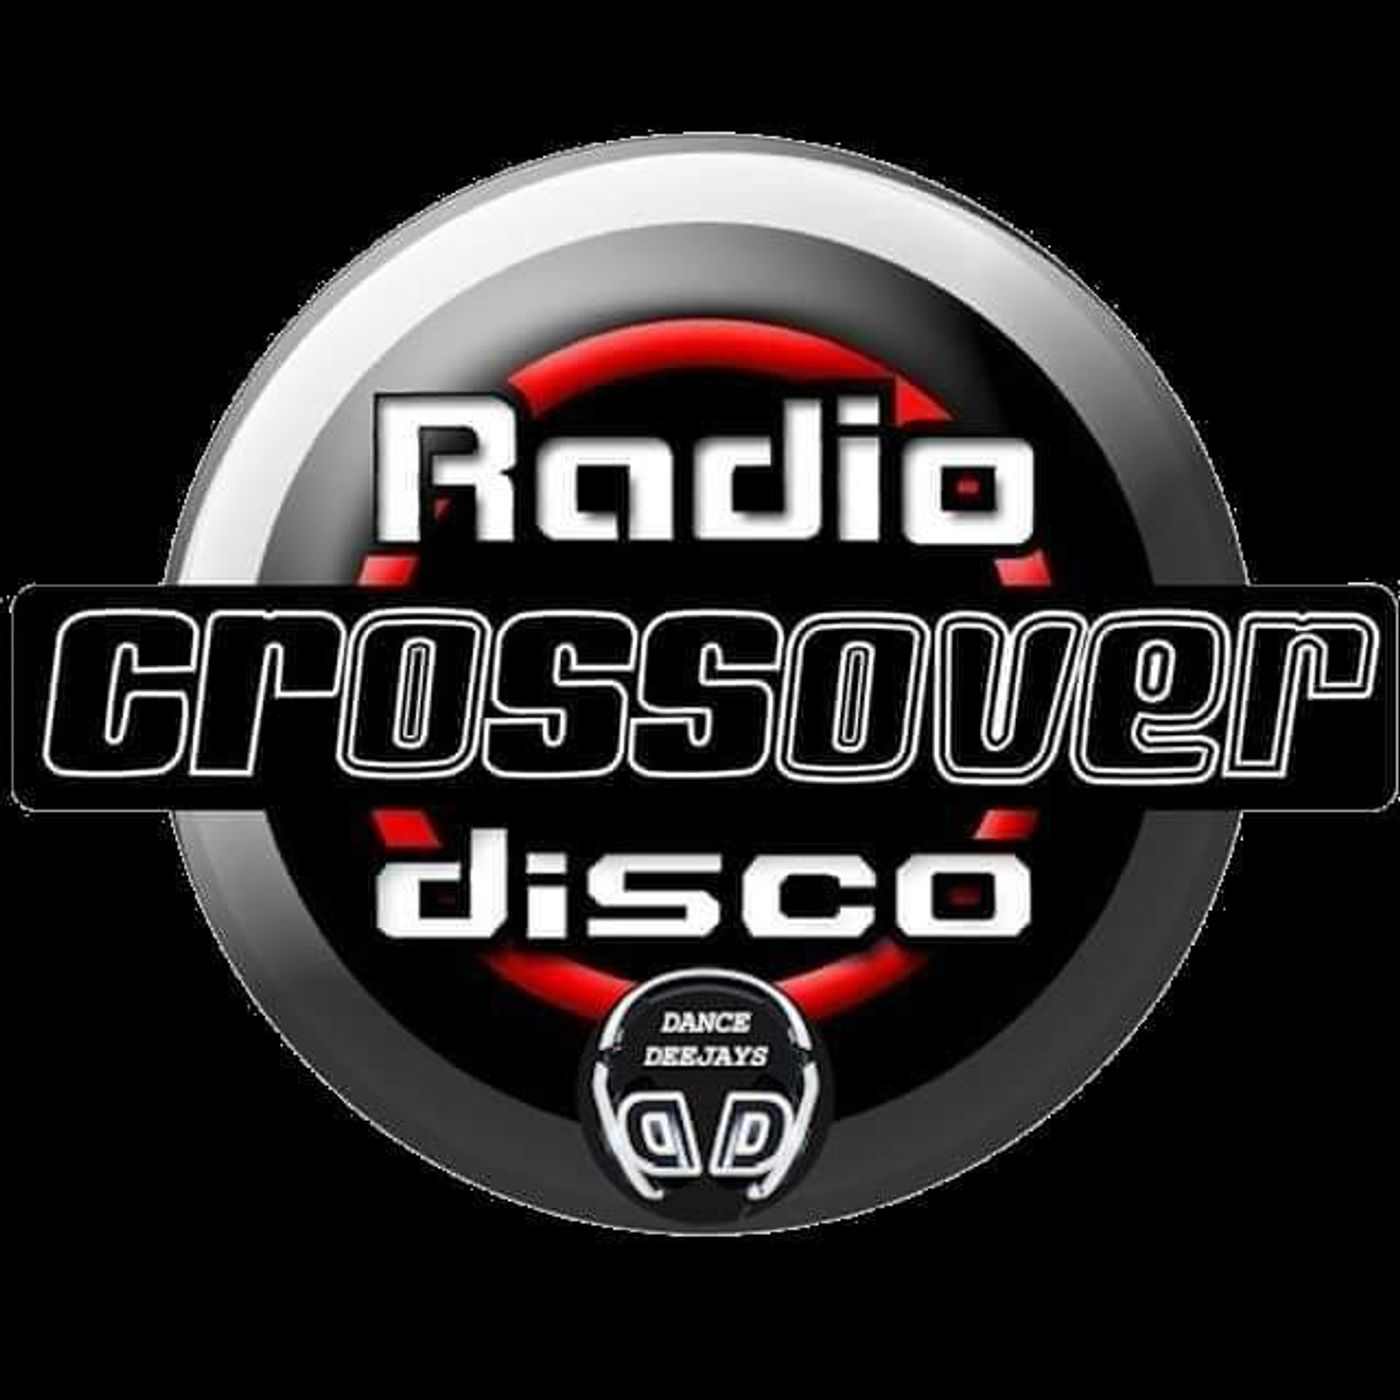 RADIO CROSSOVER DISCO Dance and Deejays